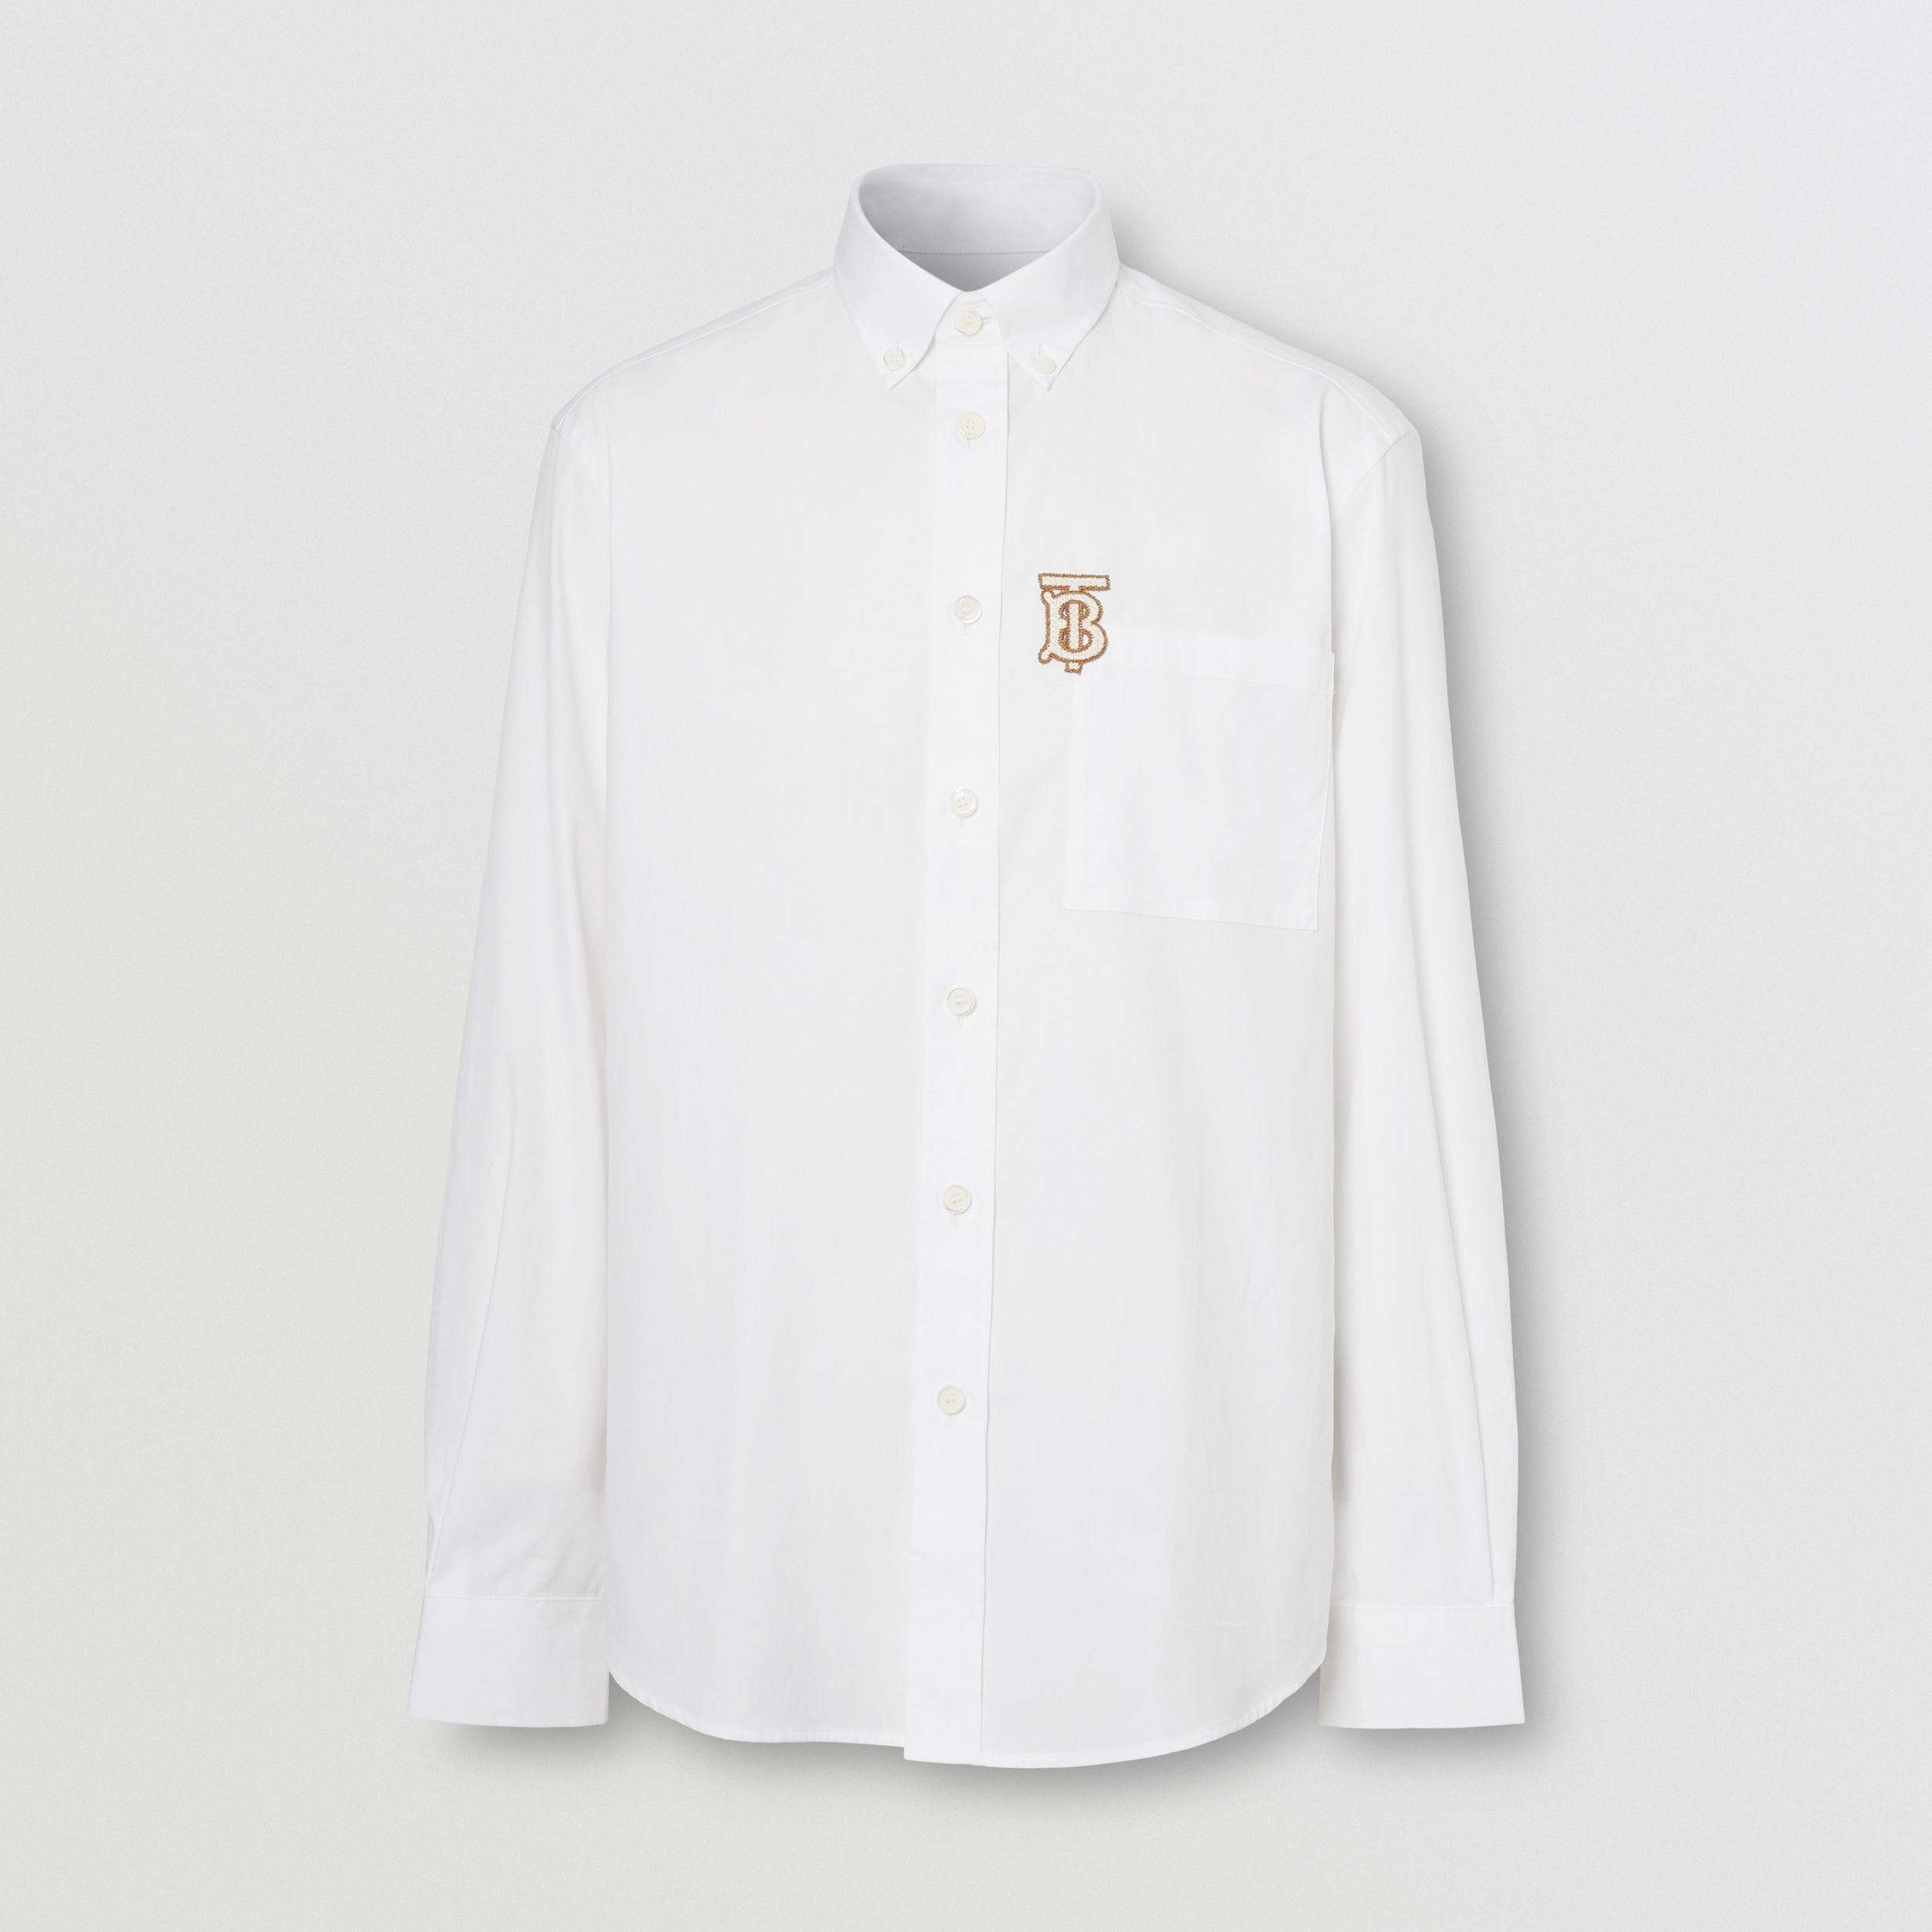 Monogrom Motif Stretch Cotton Poplin Shirt in White - Men | Burberry Australia - 4